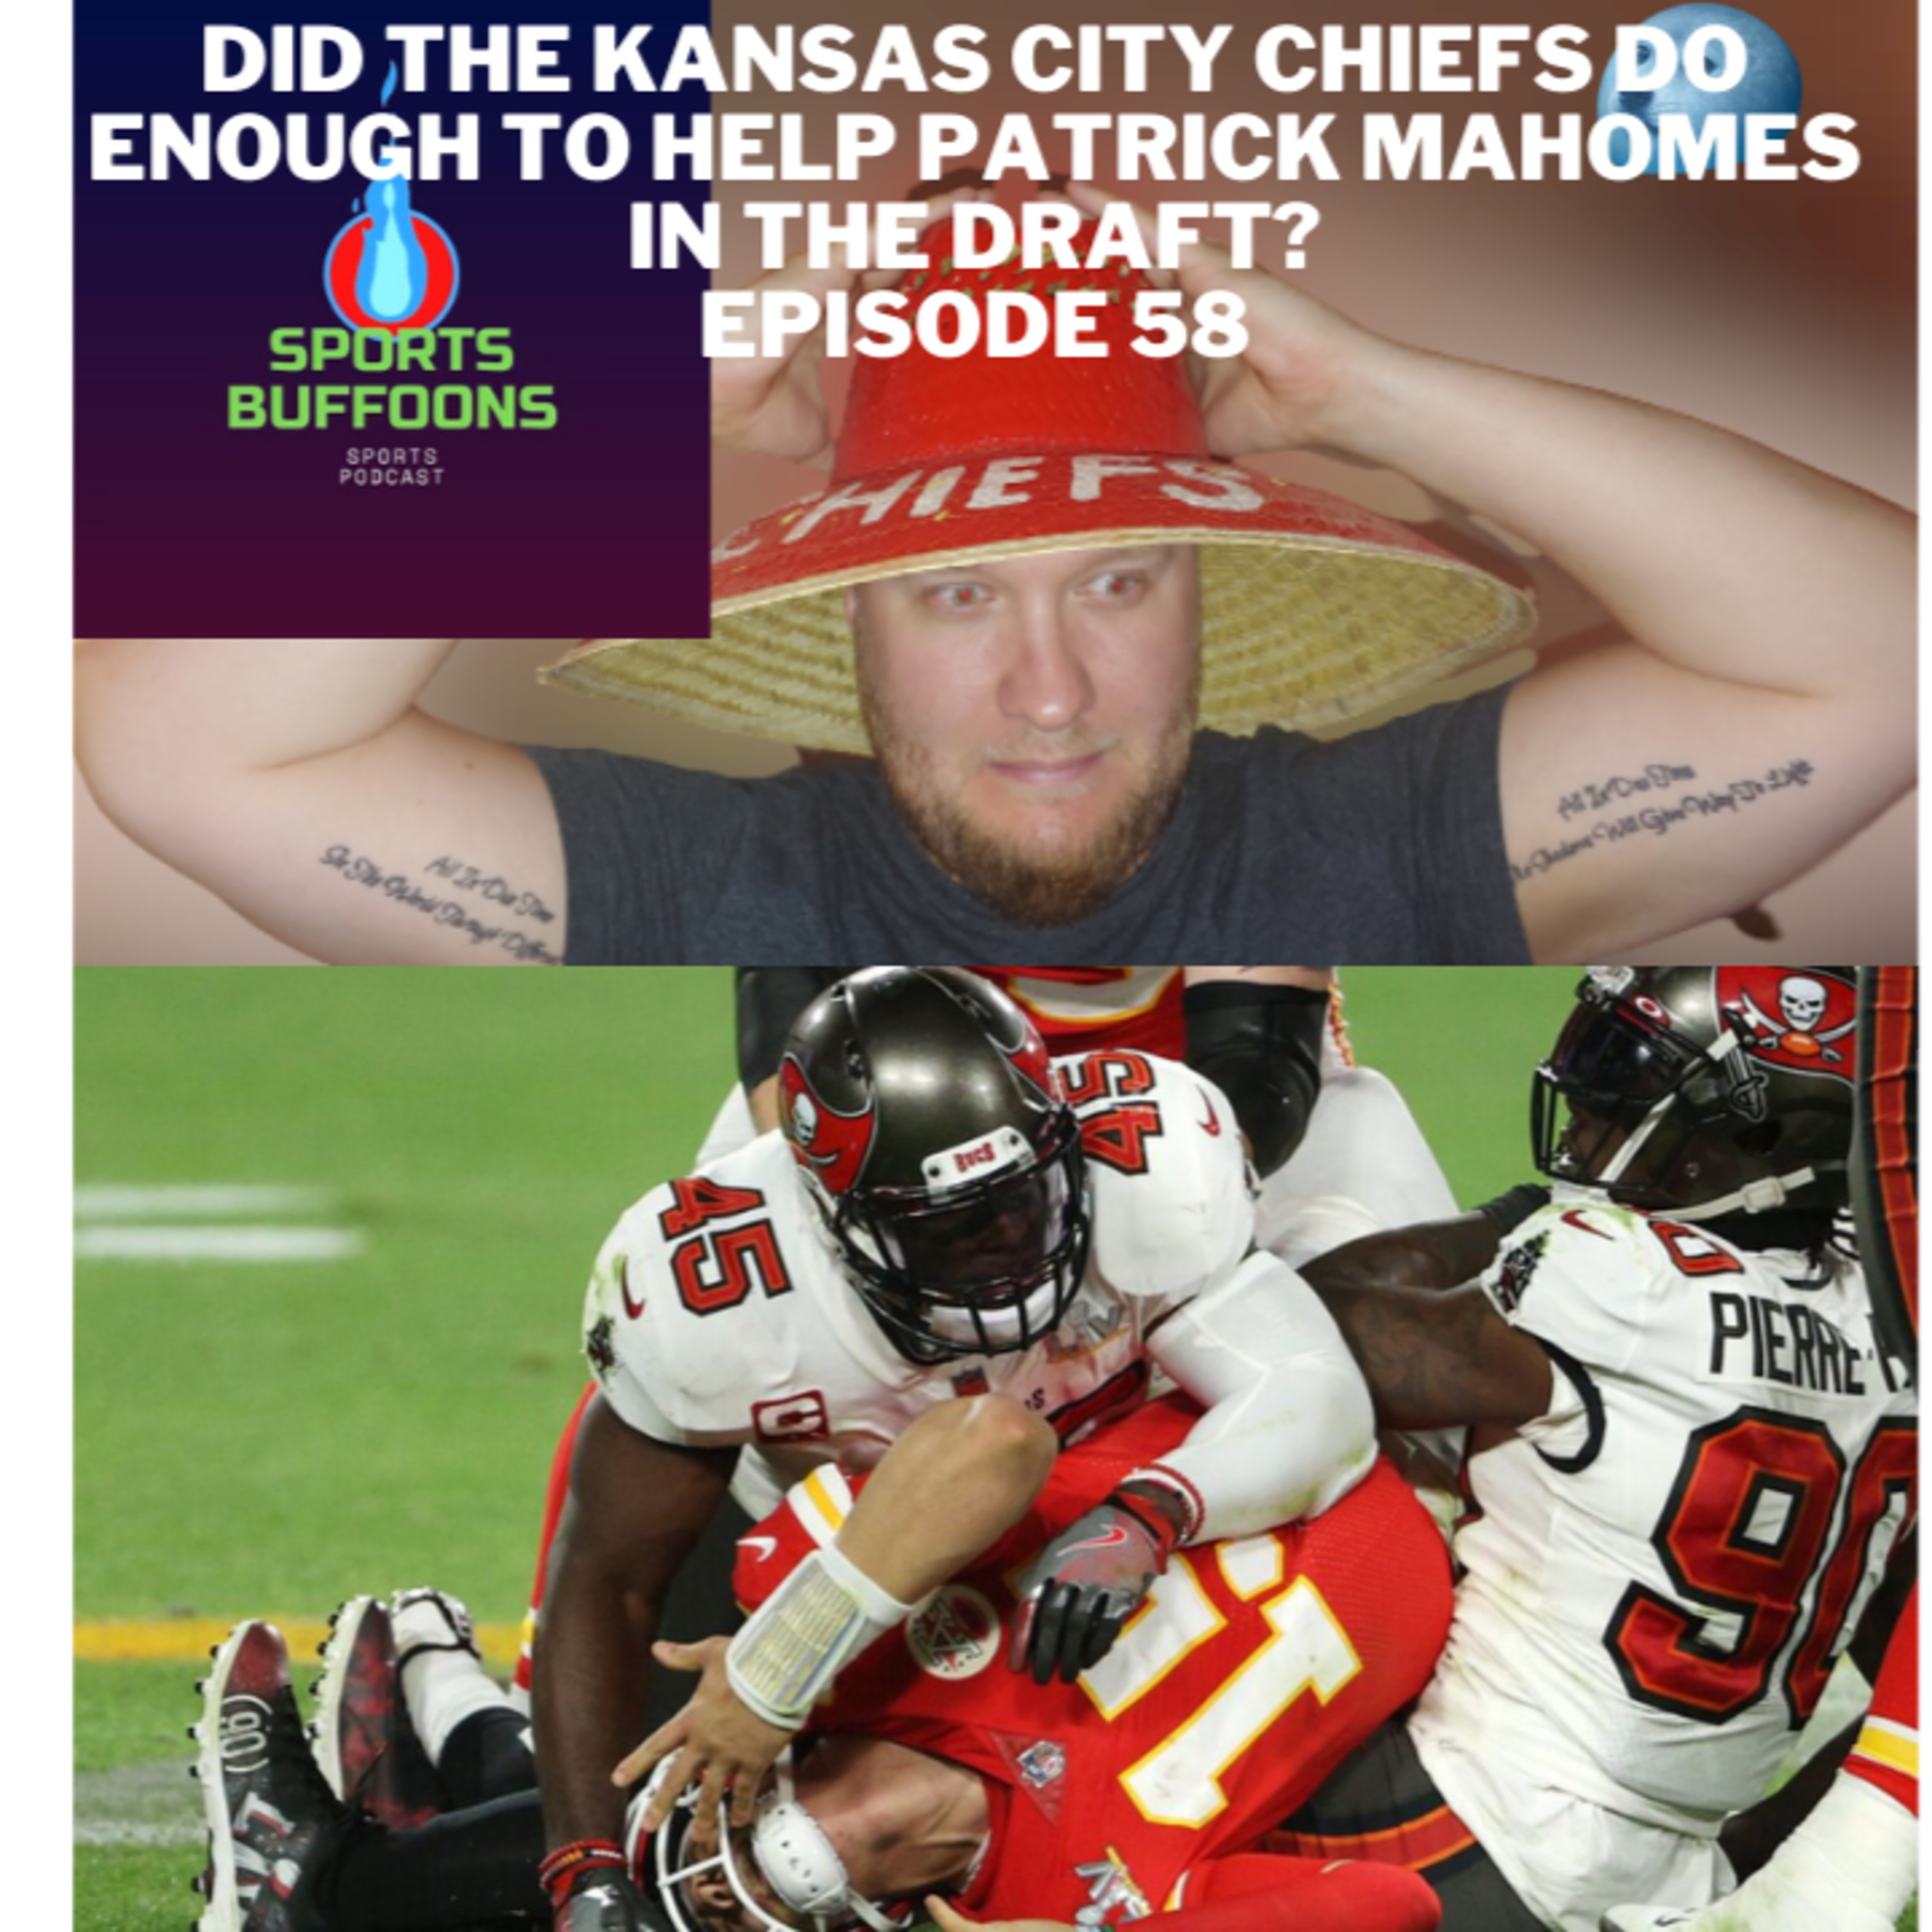 Did the Kansas City Chiefs do enough to help Patrick Mahomes in the draft? - EP 58